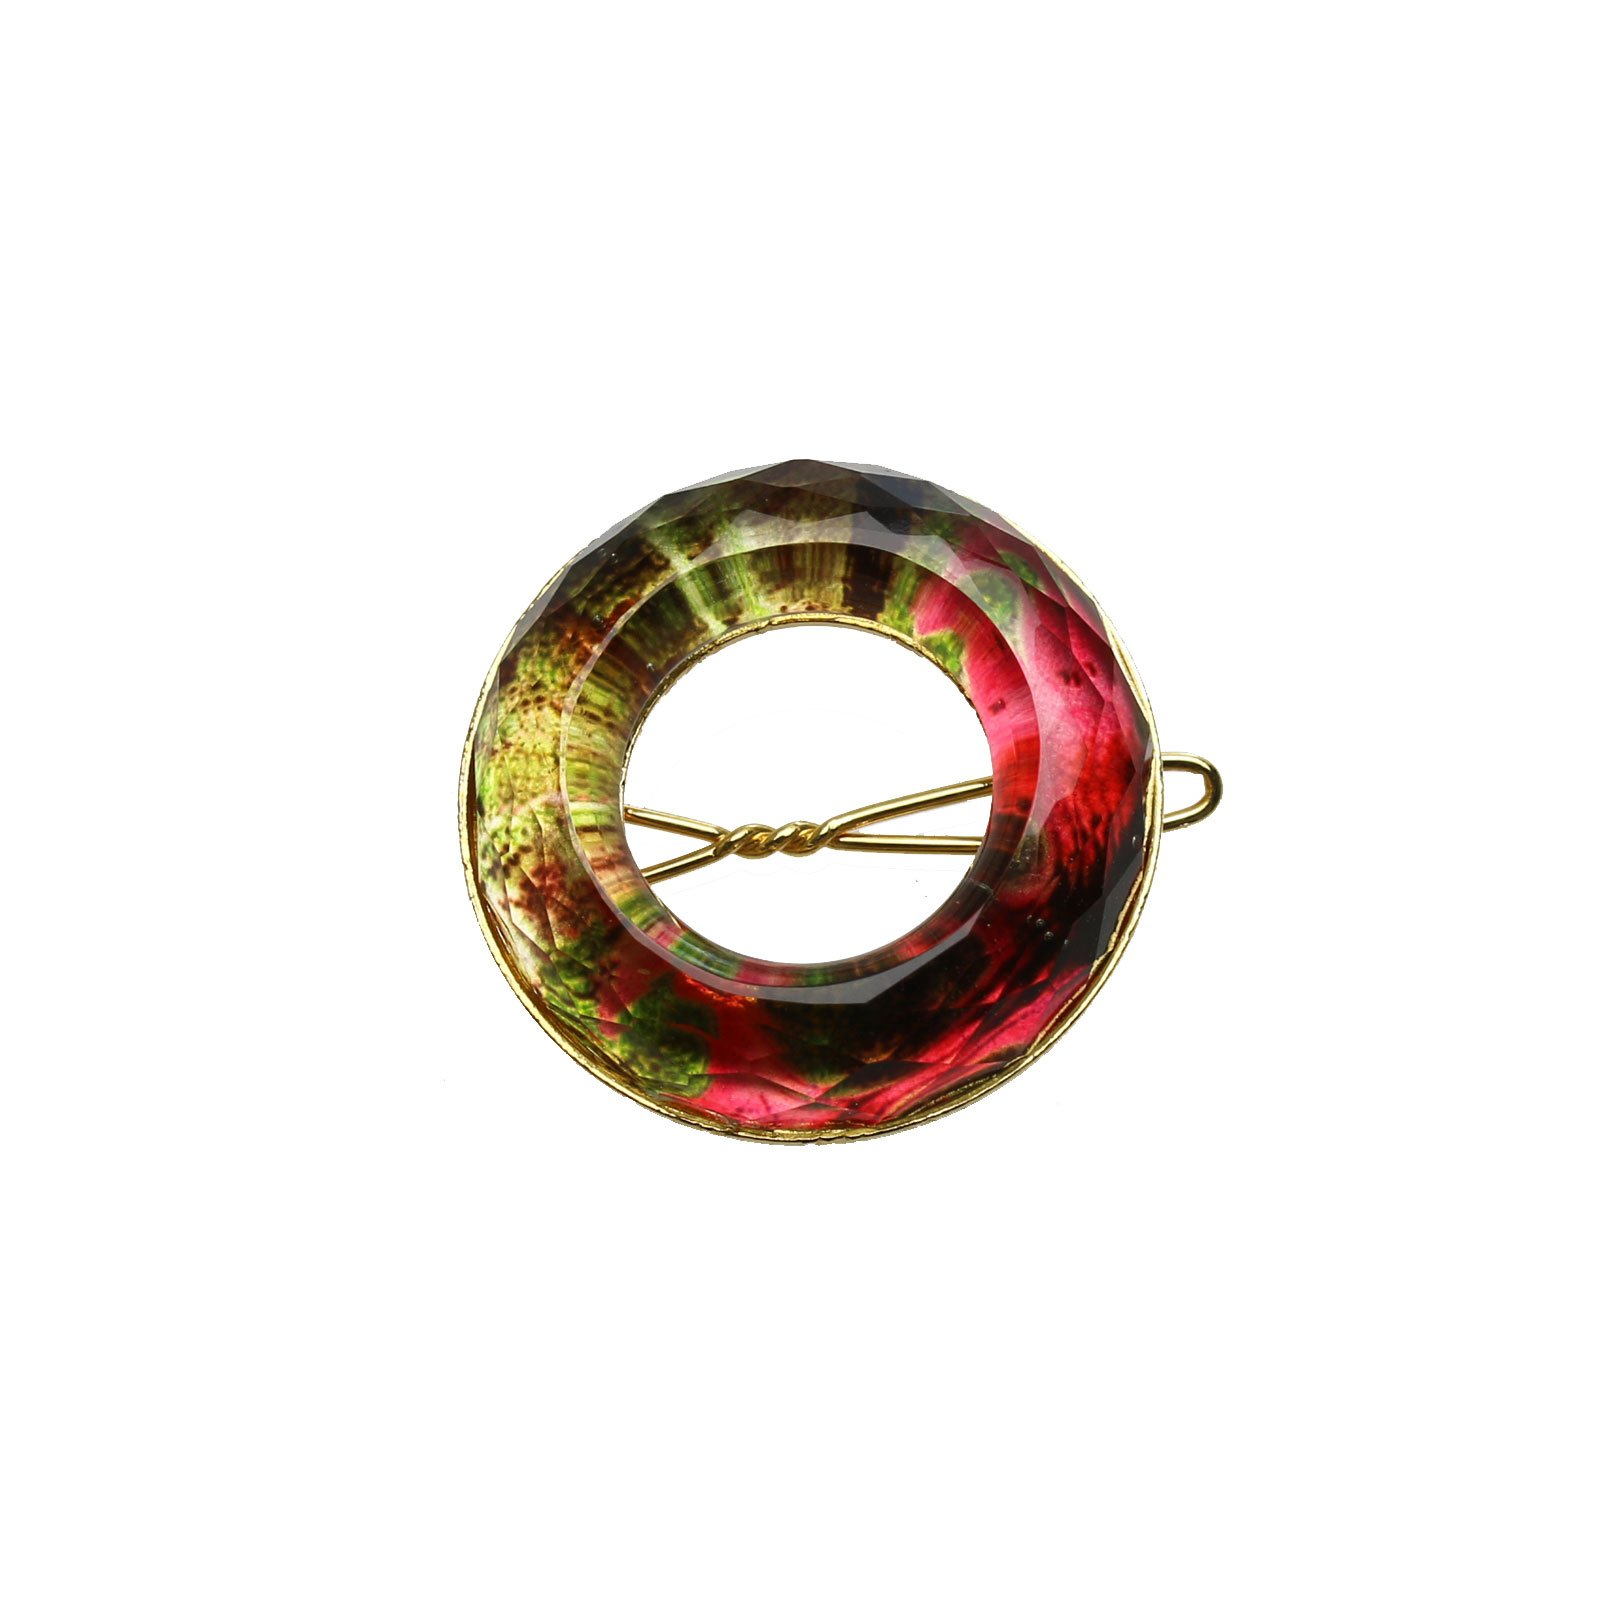 Tamarusan Hair Clip Hairpin Red Donut Hair Decoration Kimono Hair Accessory Women